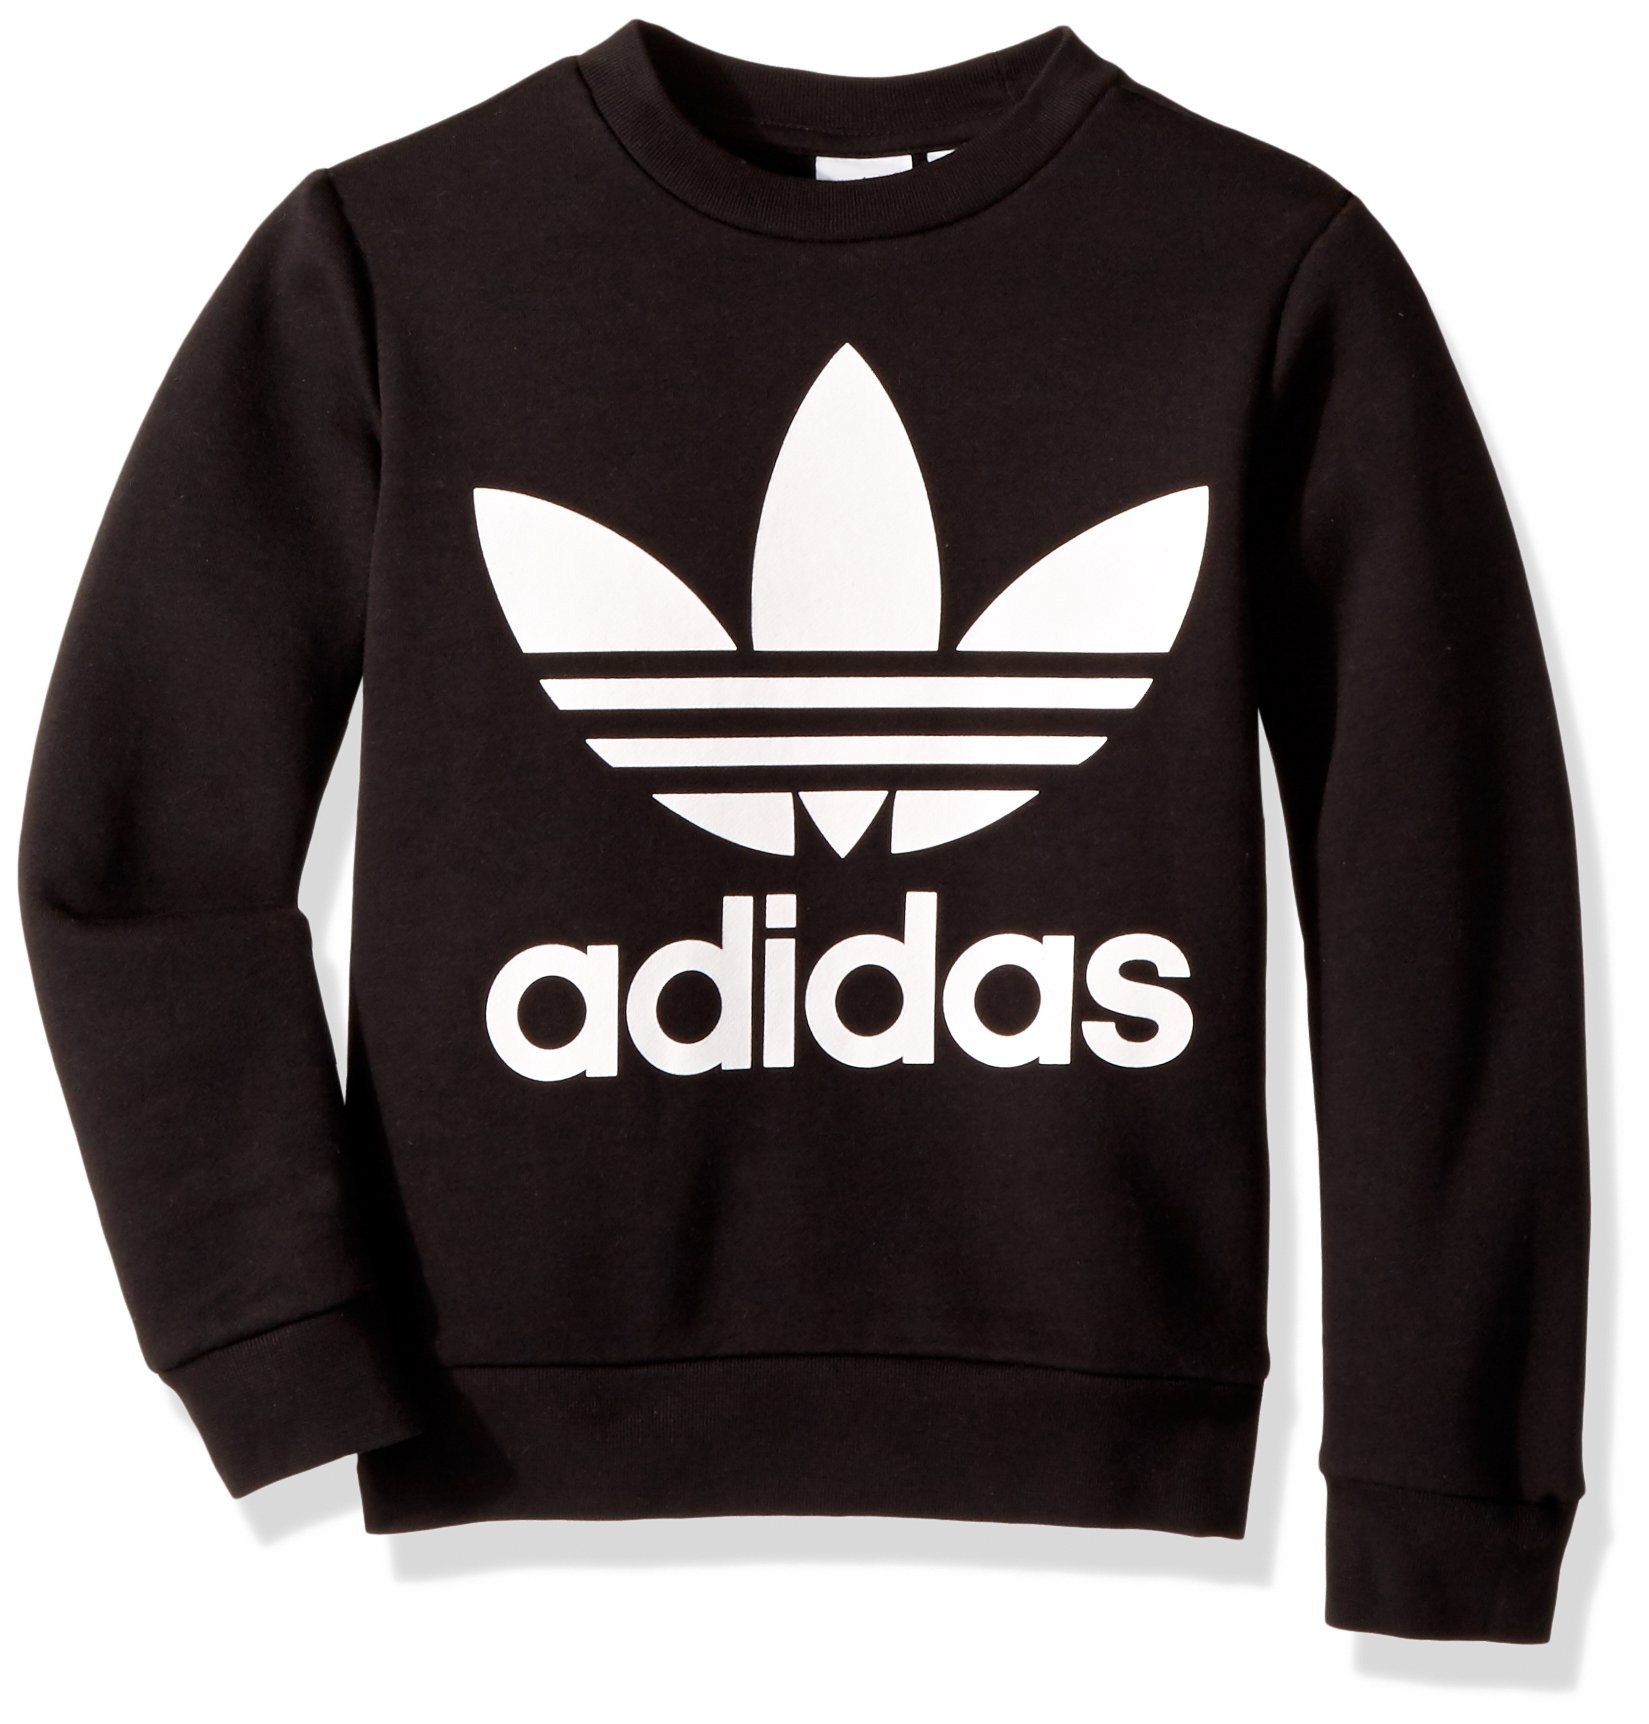 adidas Originals Boys' Big Fleece Crew, Black/White, X-Large